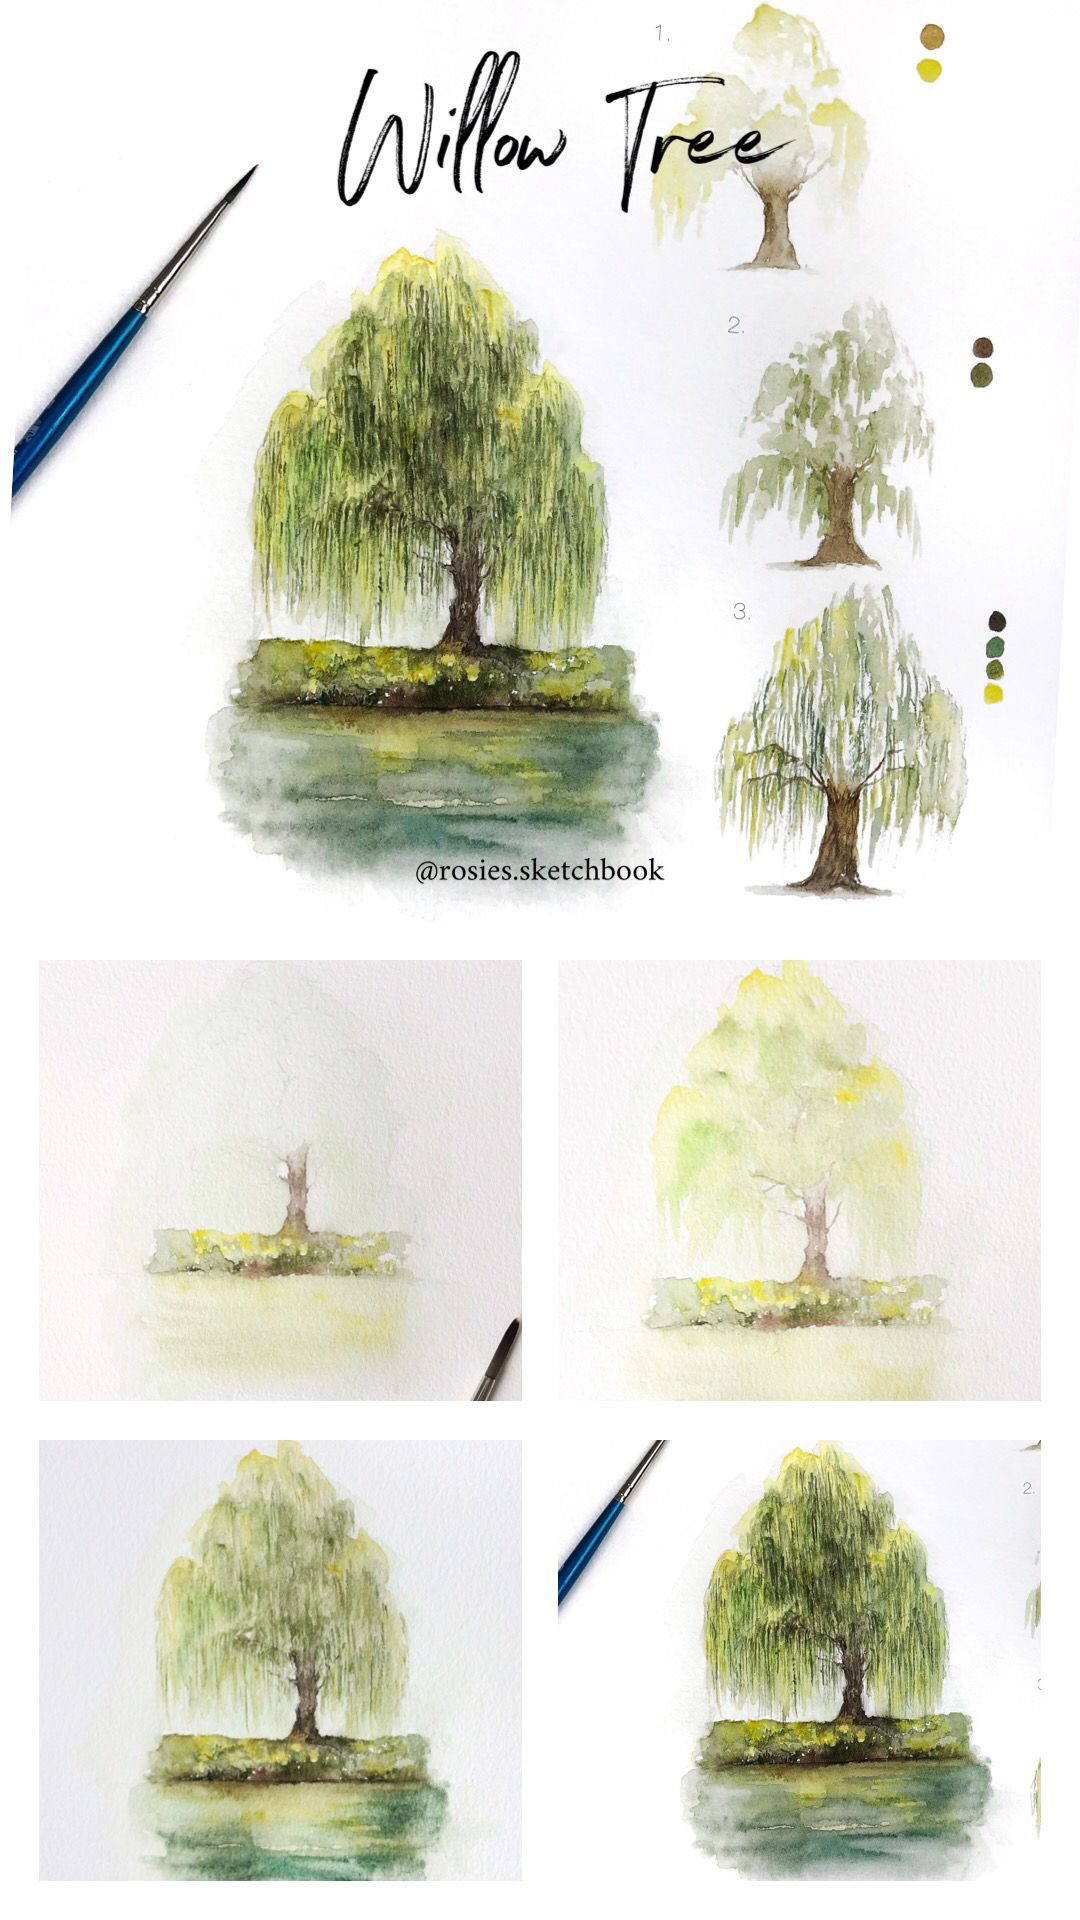 Mini Willow Tree Tutorial With Step By Step Process Photos